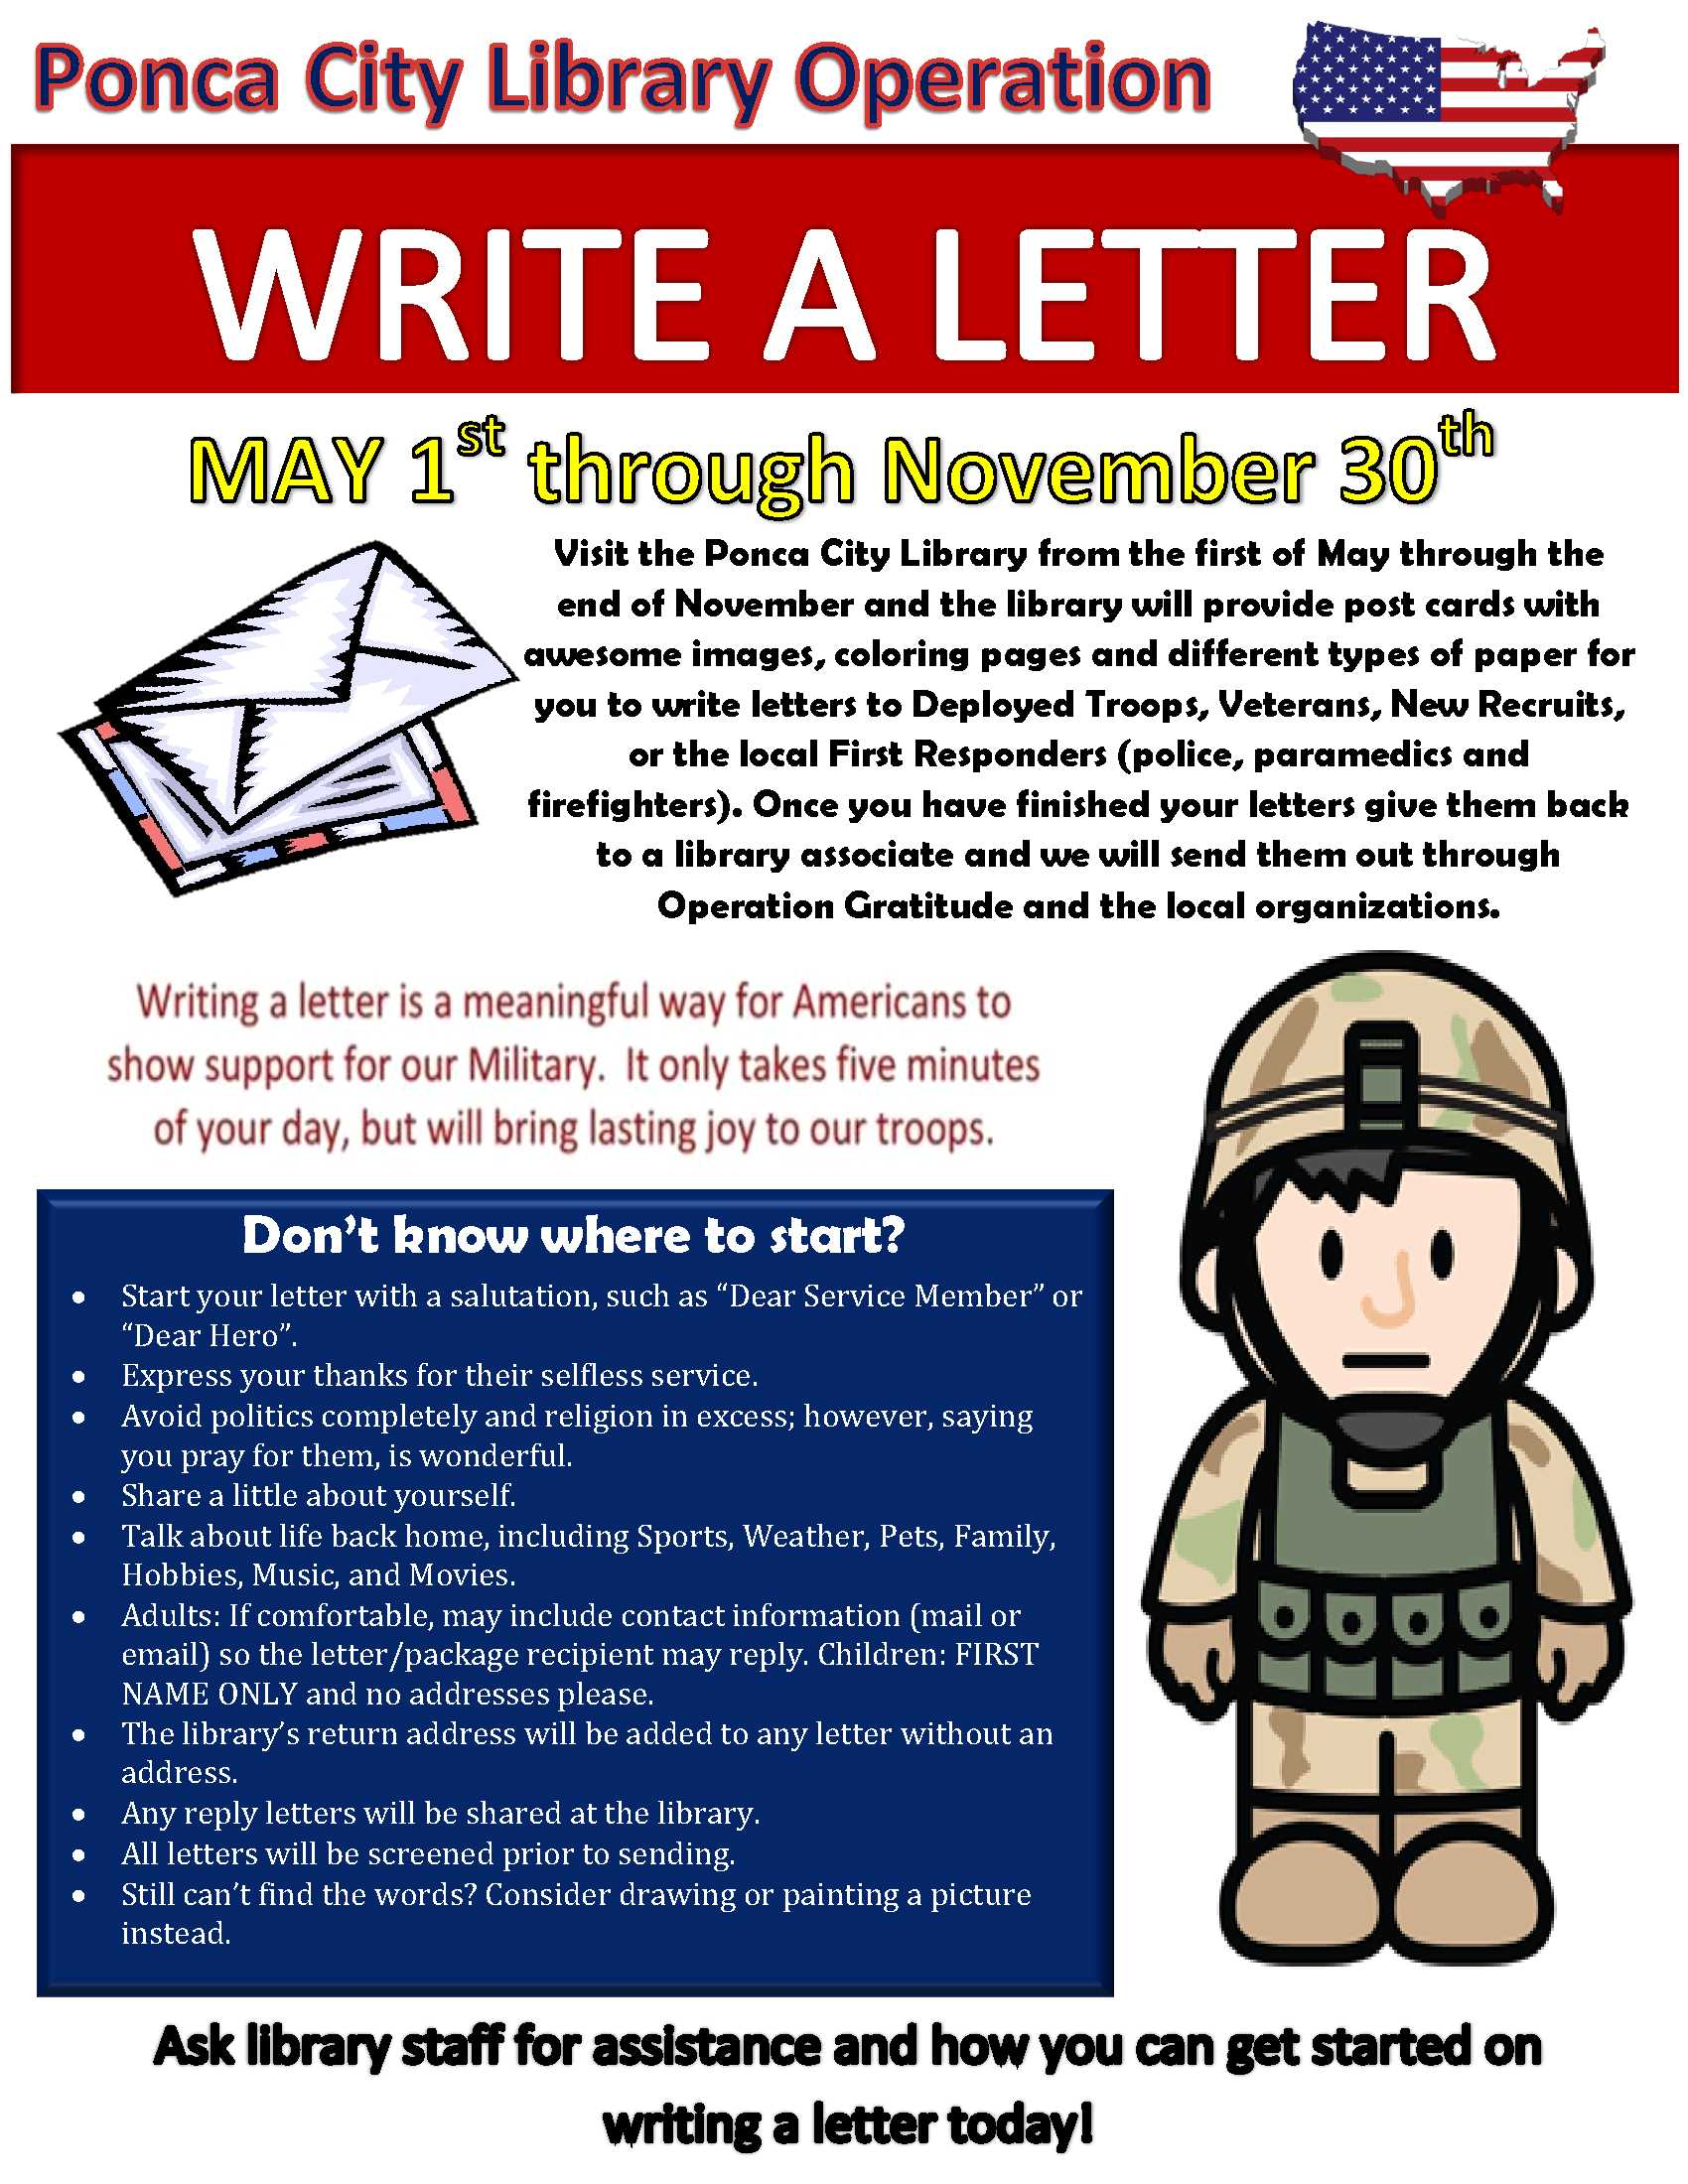 Write a Letter May 1st - Nov 30th.jpg